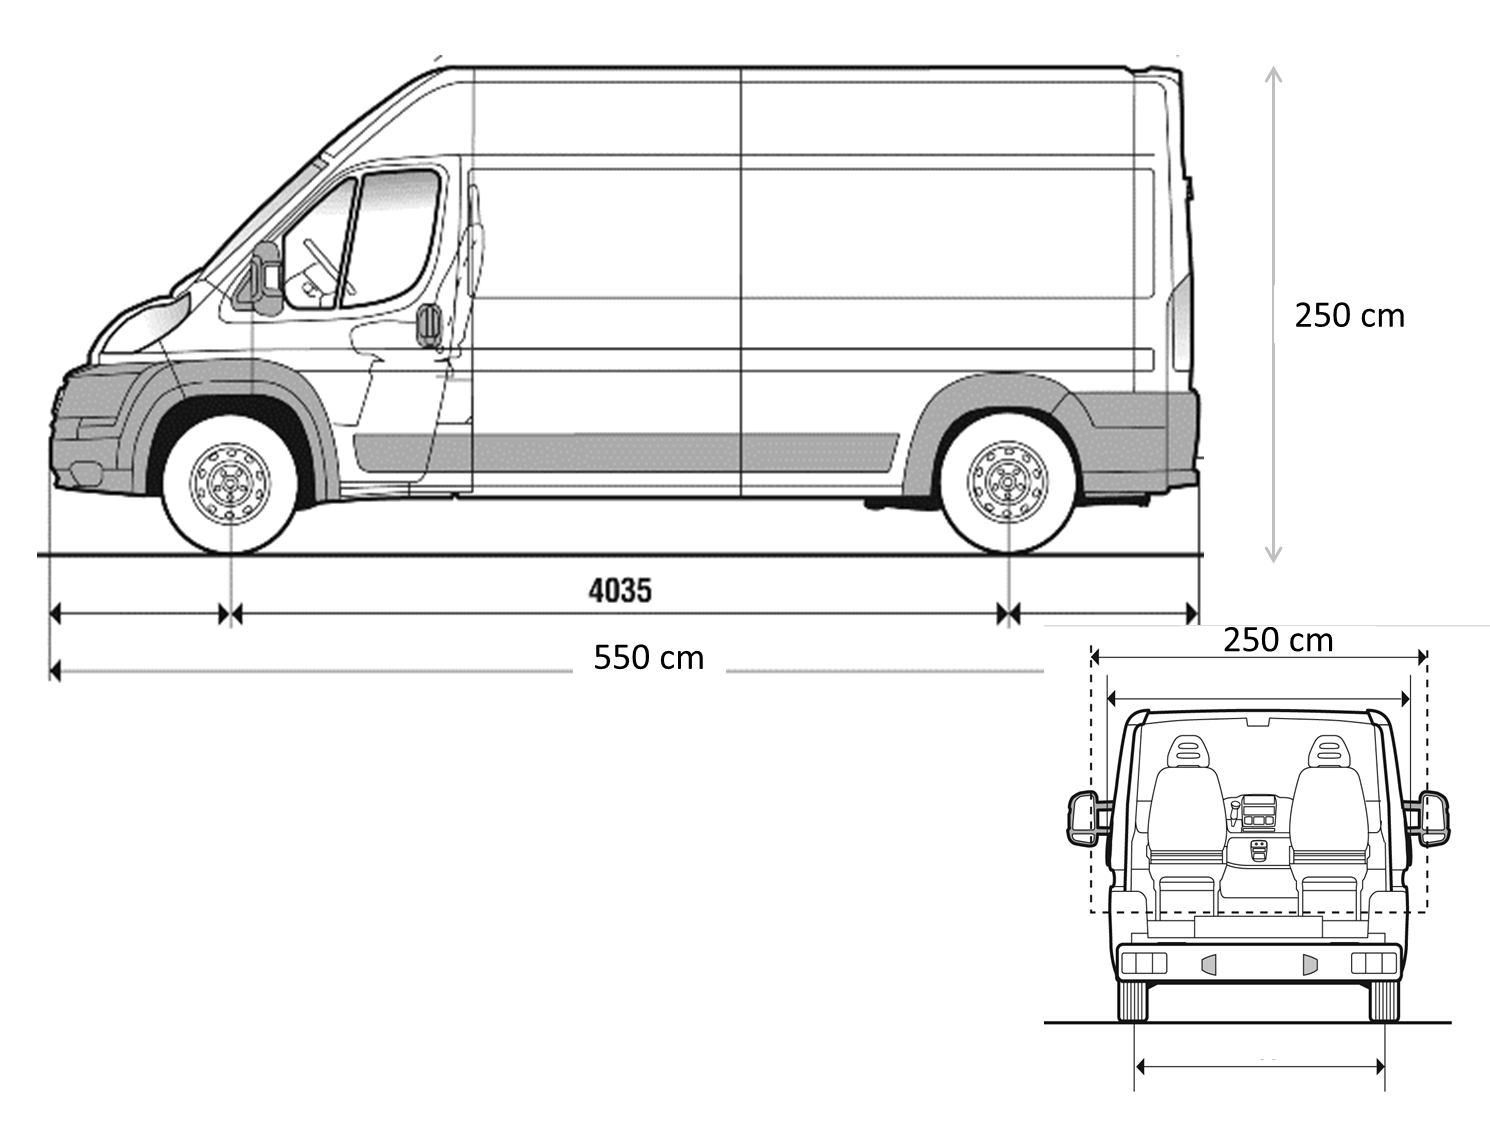 iveco daily 12 m3 littoral location. Black Bedroom Furniture Sets. Home Design Ideas